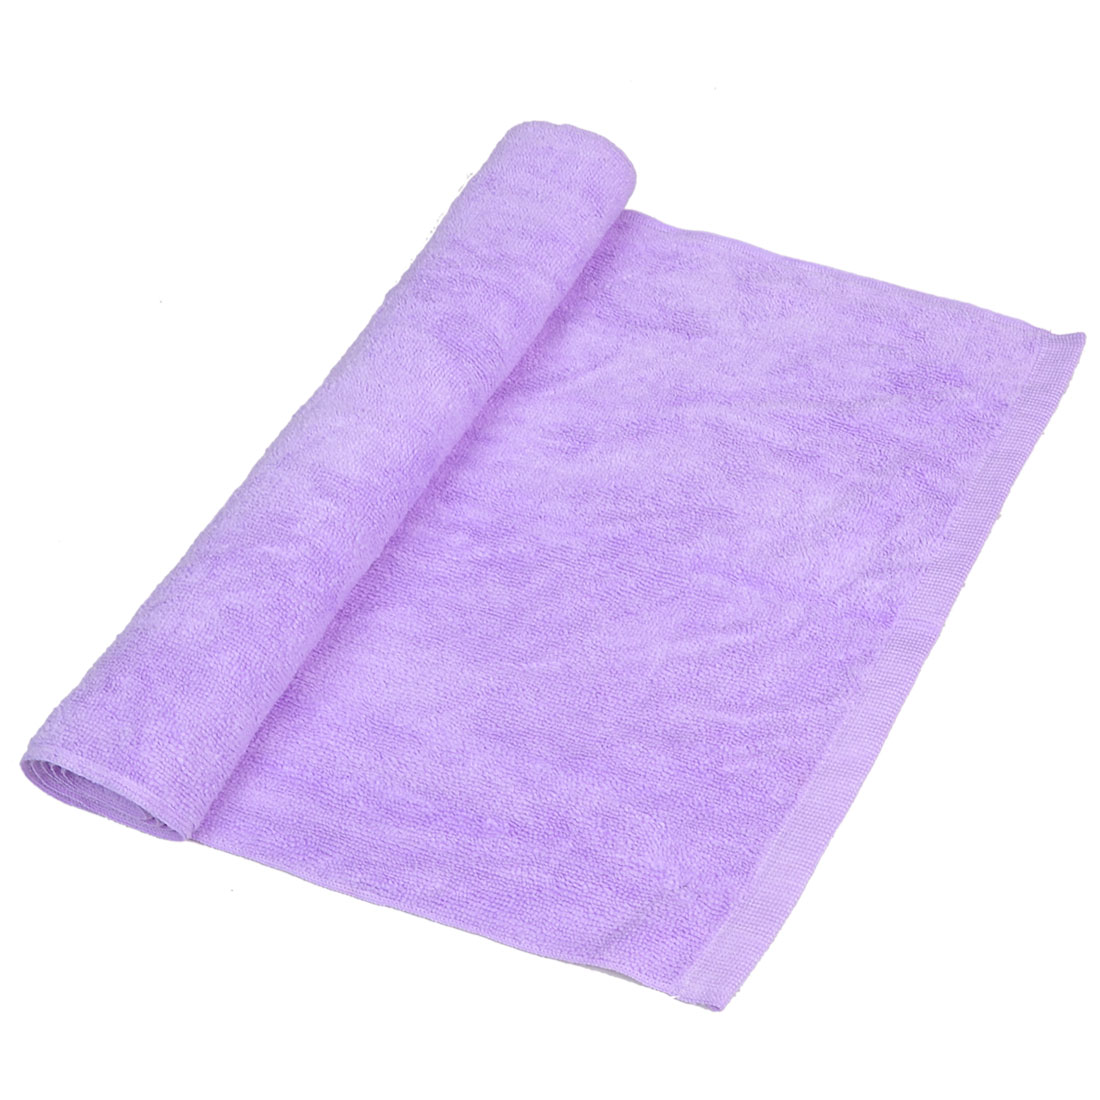 34cm x 78cm Purple Face Hand Bath Washcloth Hair Dryer Towel for Families Hotel